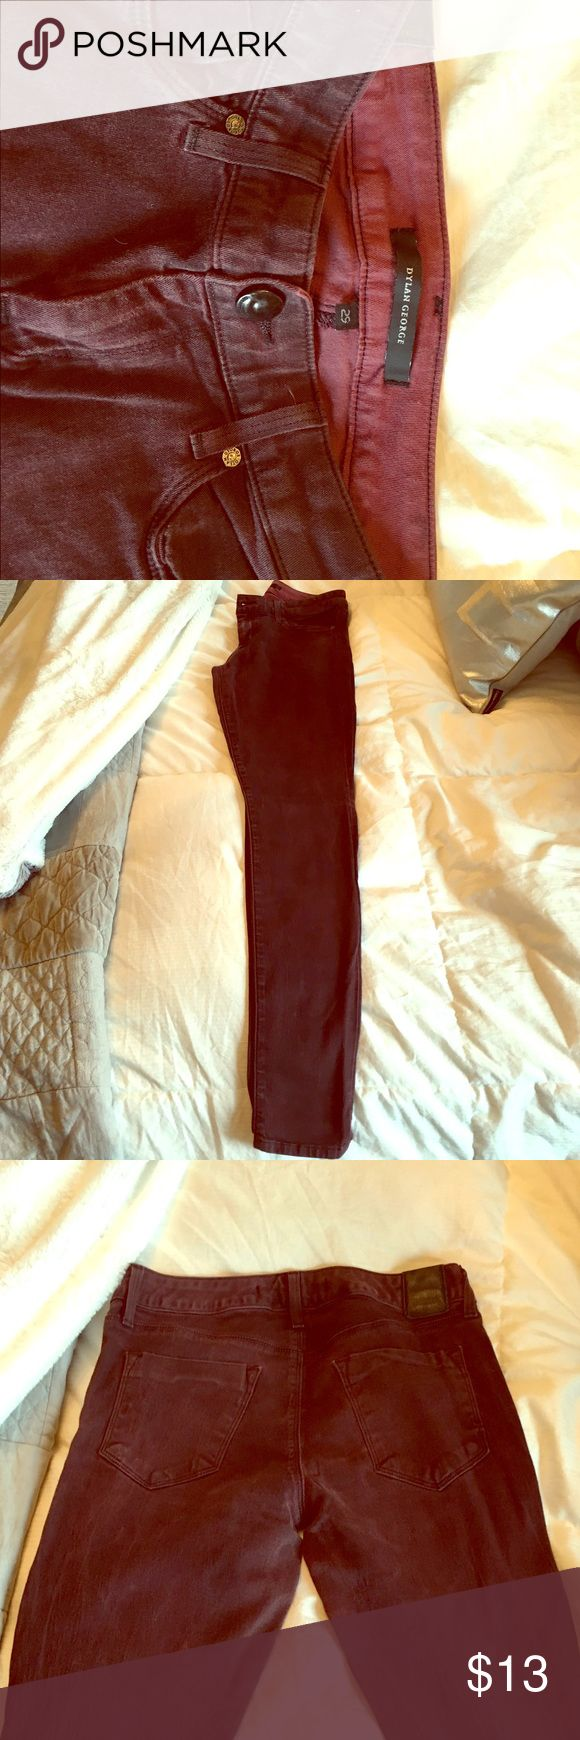 Dylan George size 29 maroon skinny jeans Dylan George size 29 maroon skinny jeans. Weathered looking. Worn twice. dylan george Jeans Skinny